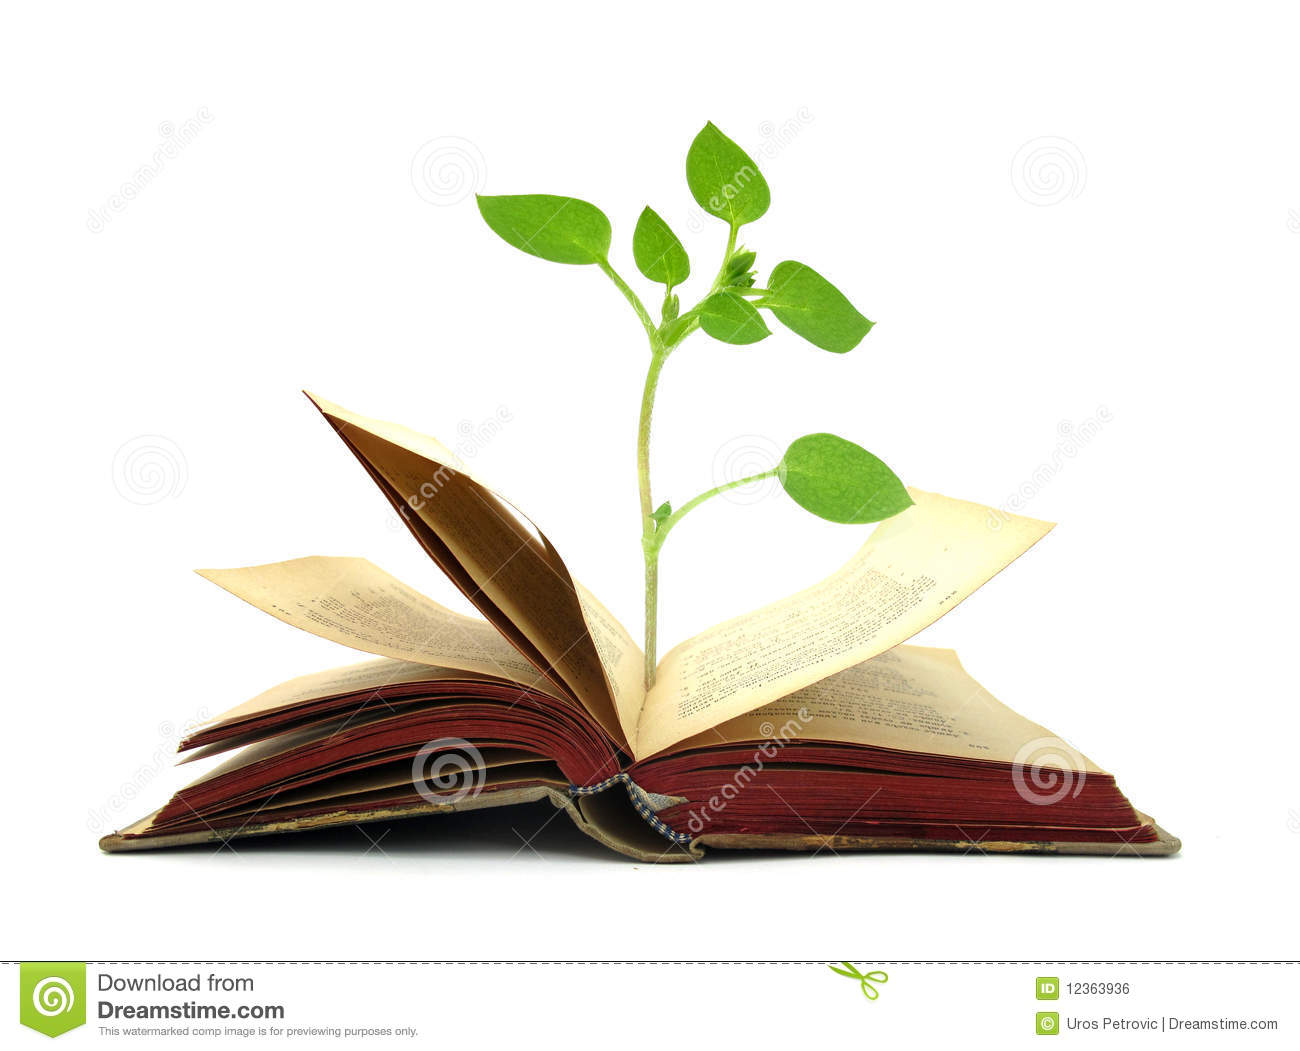 4b71c8053620a Books Old Vintage With Plant Growing From It Stock Photo - Image of ...